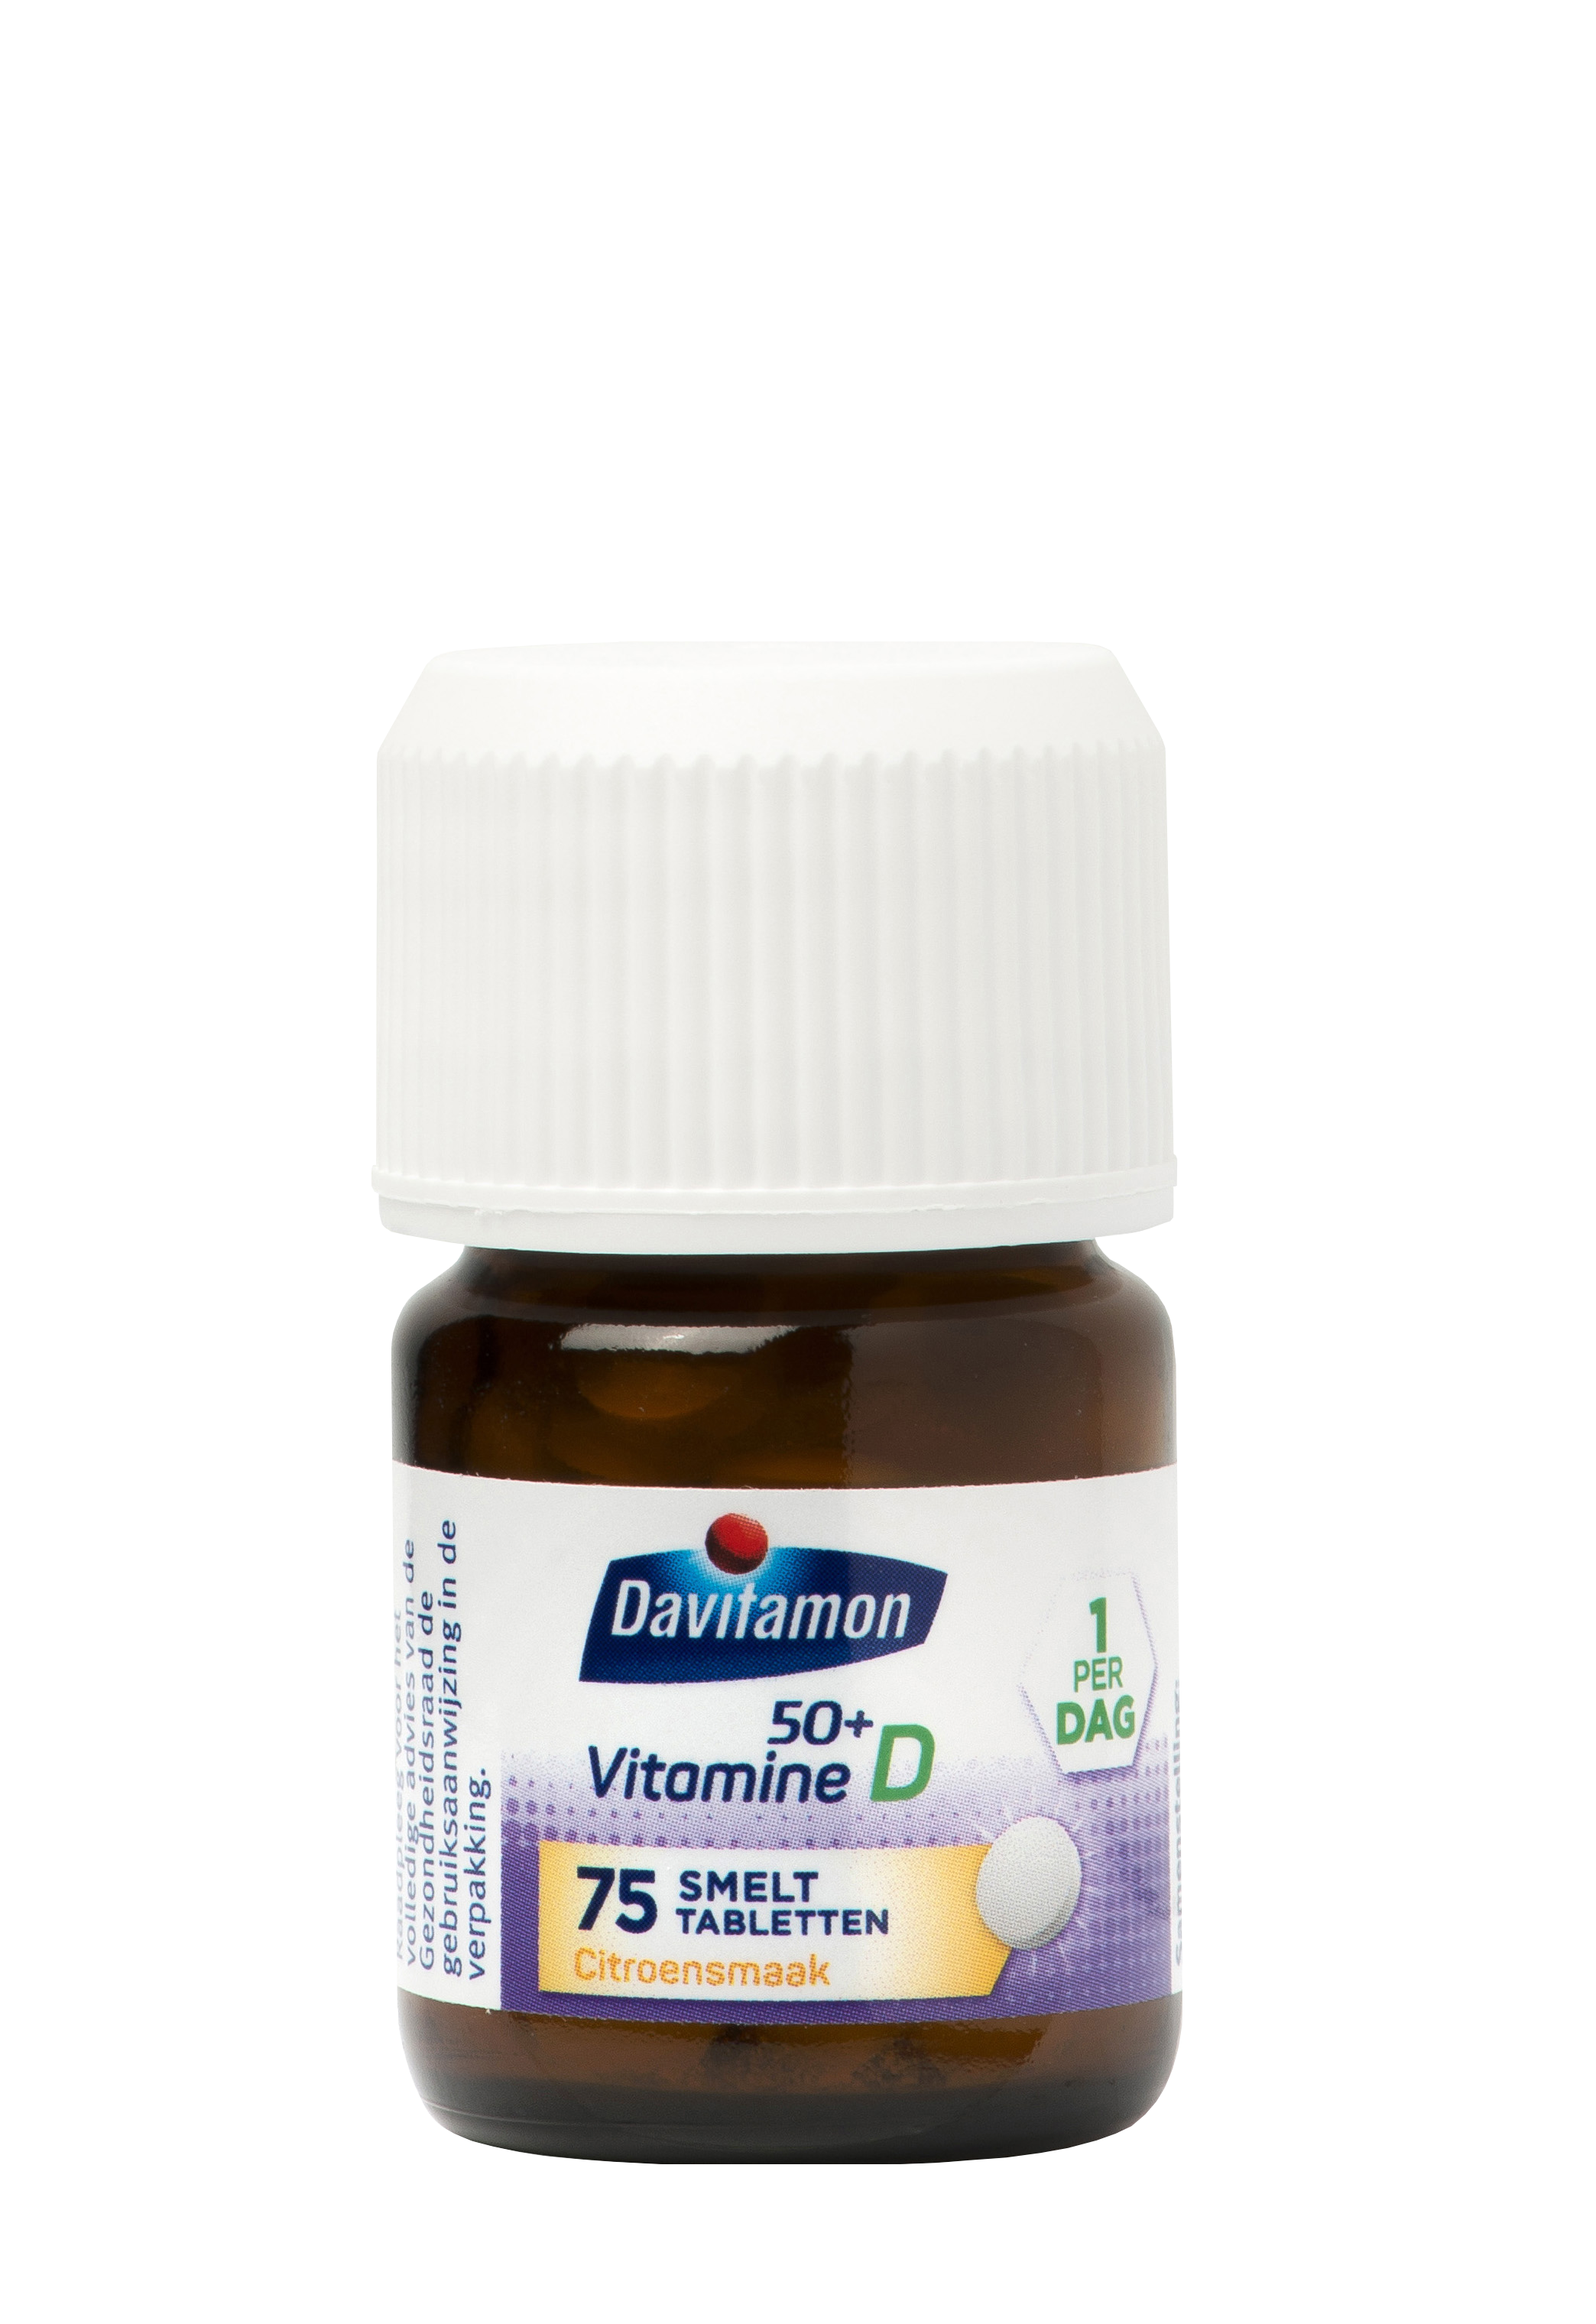 Davitamon Vitamine D 50+ Smelttabletten Product